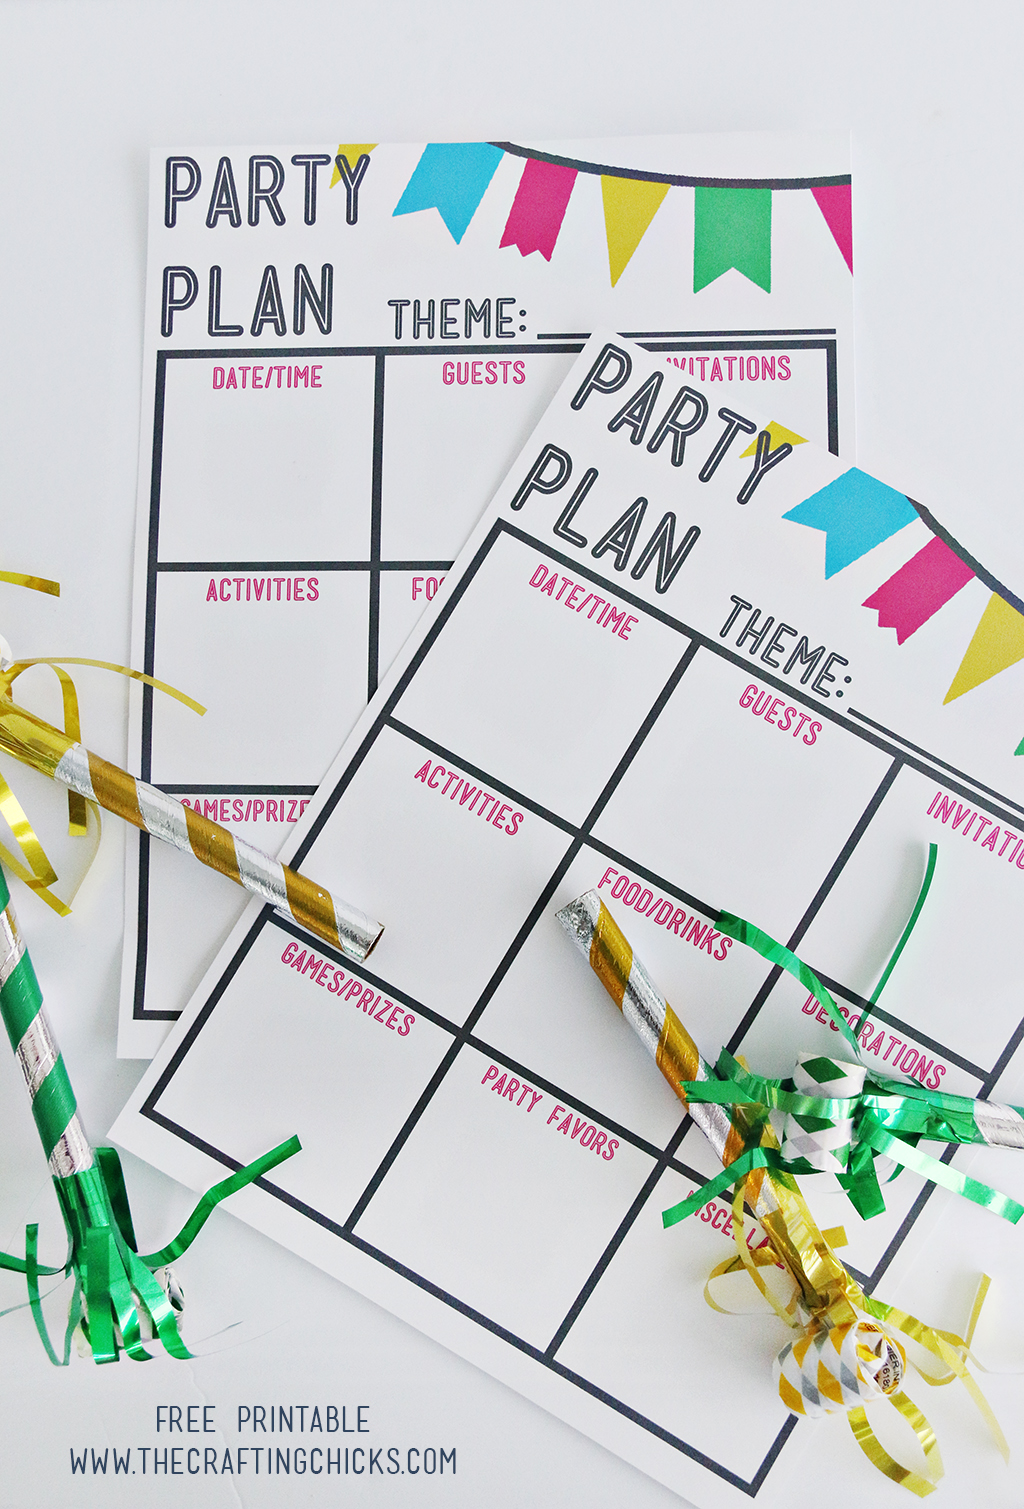 http://thecraftingchicks.com/wp-content/uploads/2017/01/cc-party-plan-3.jpg